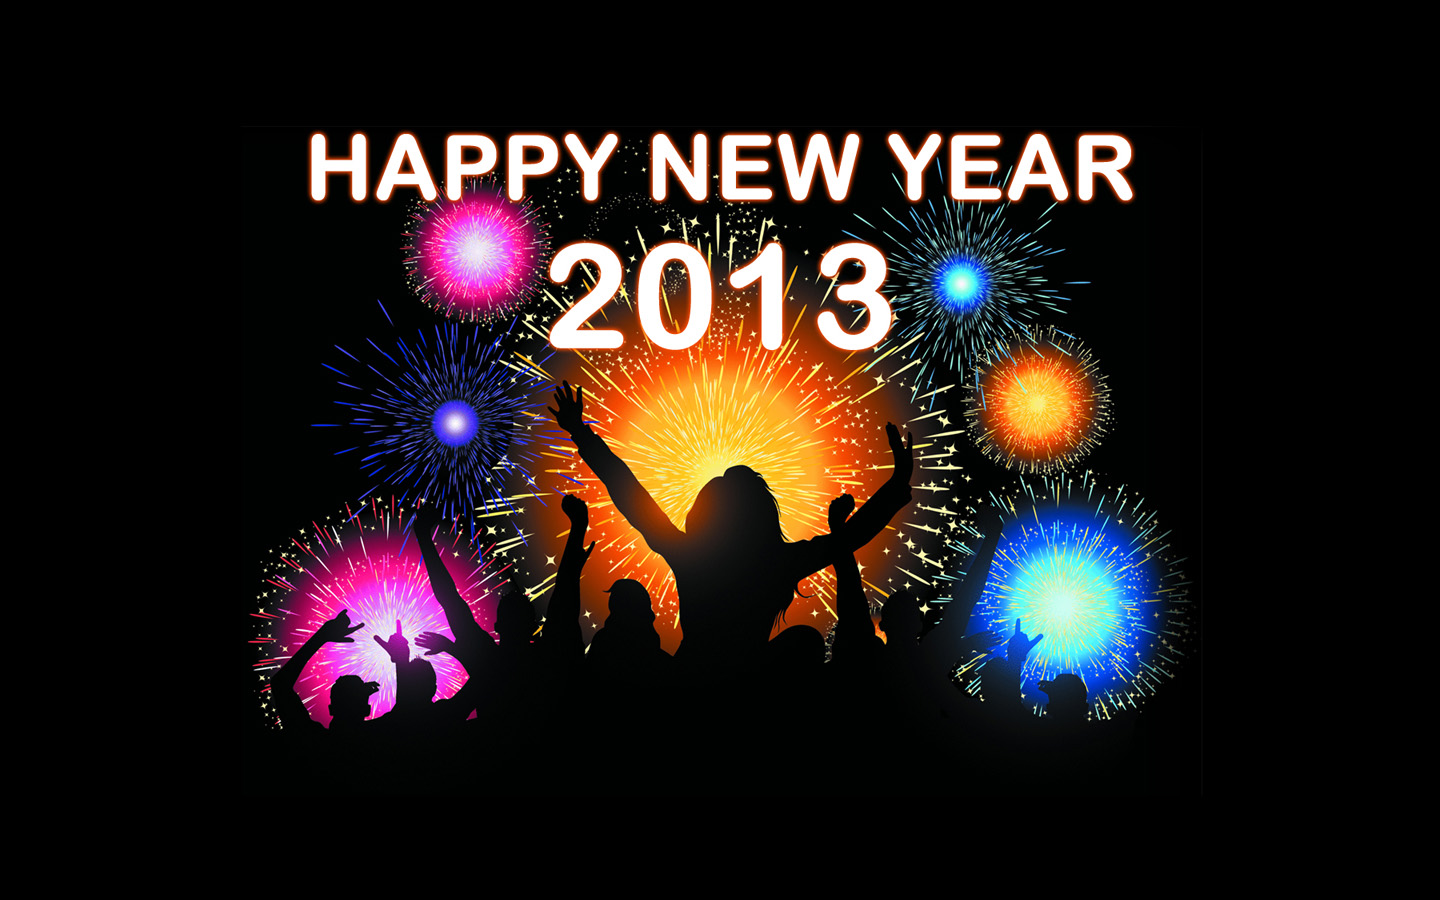 New Year 2013 32309